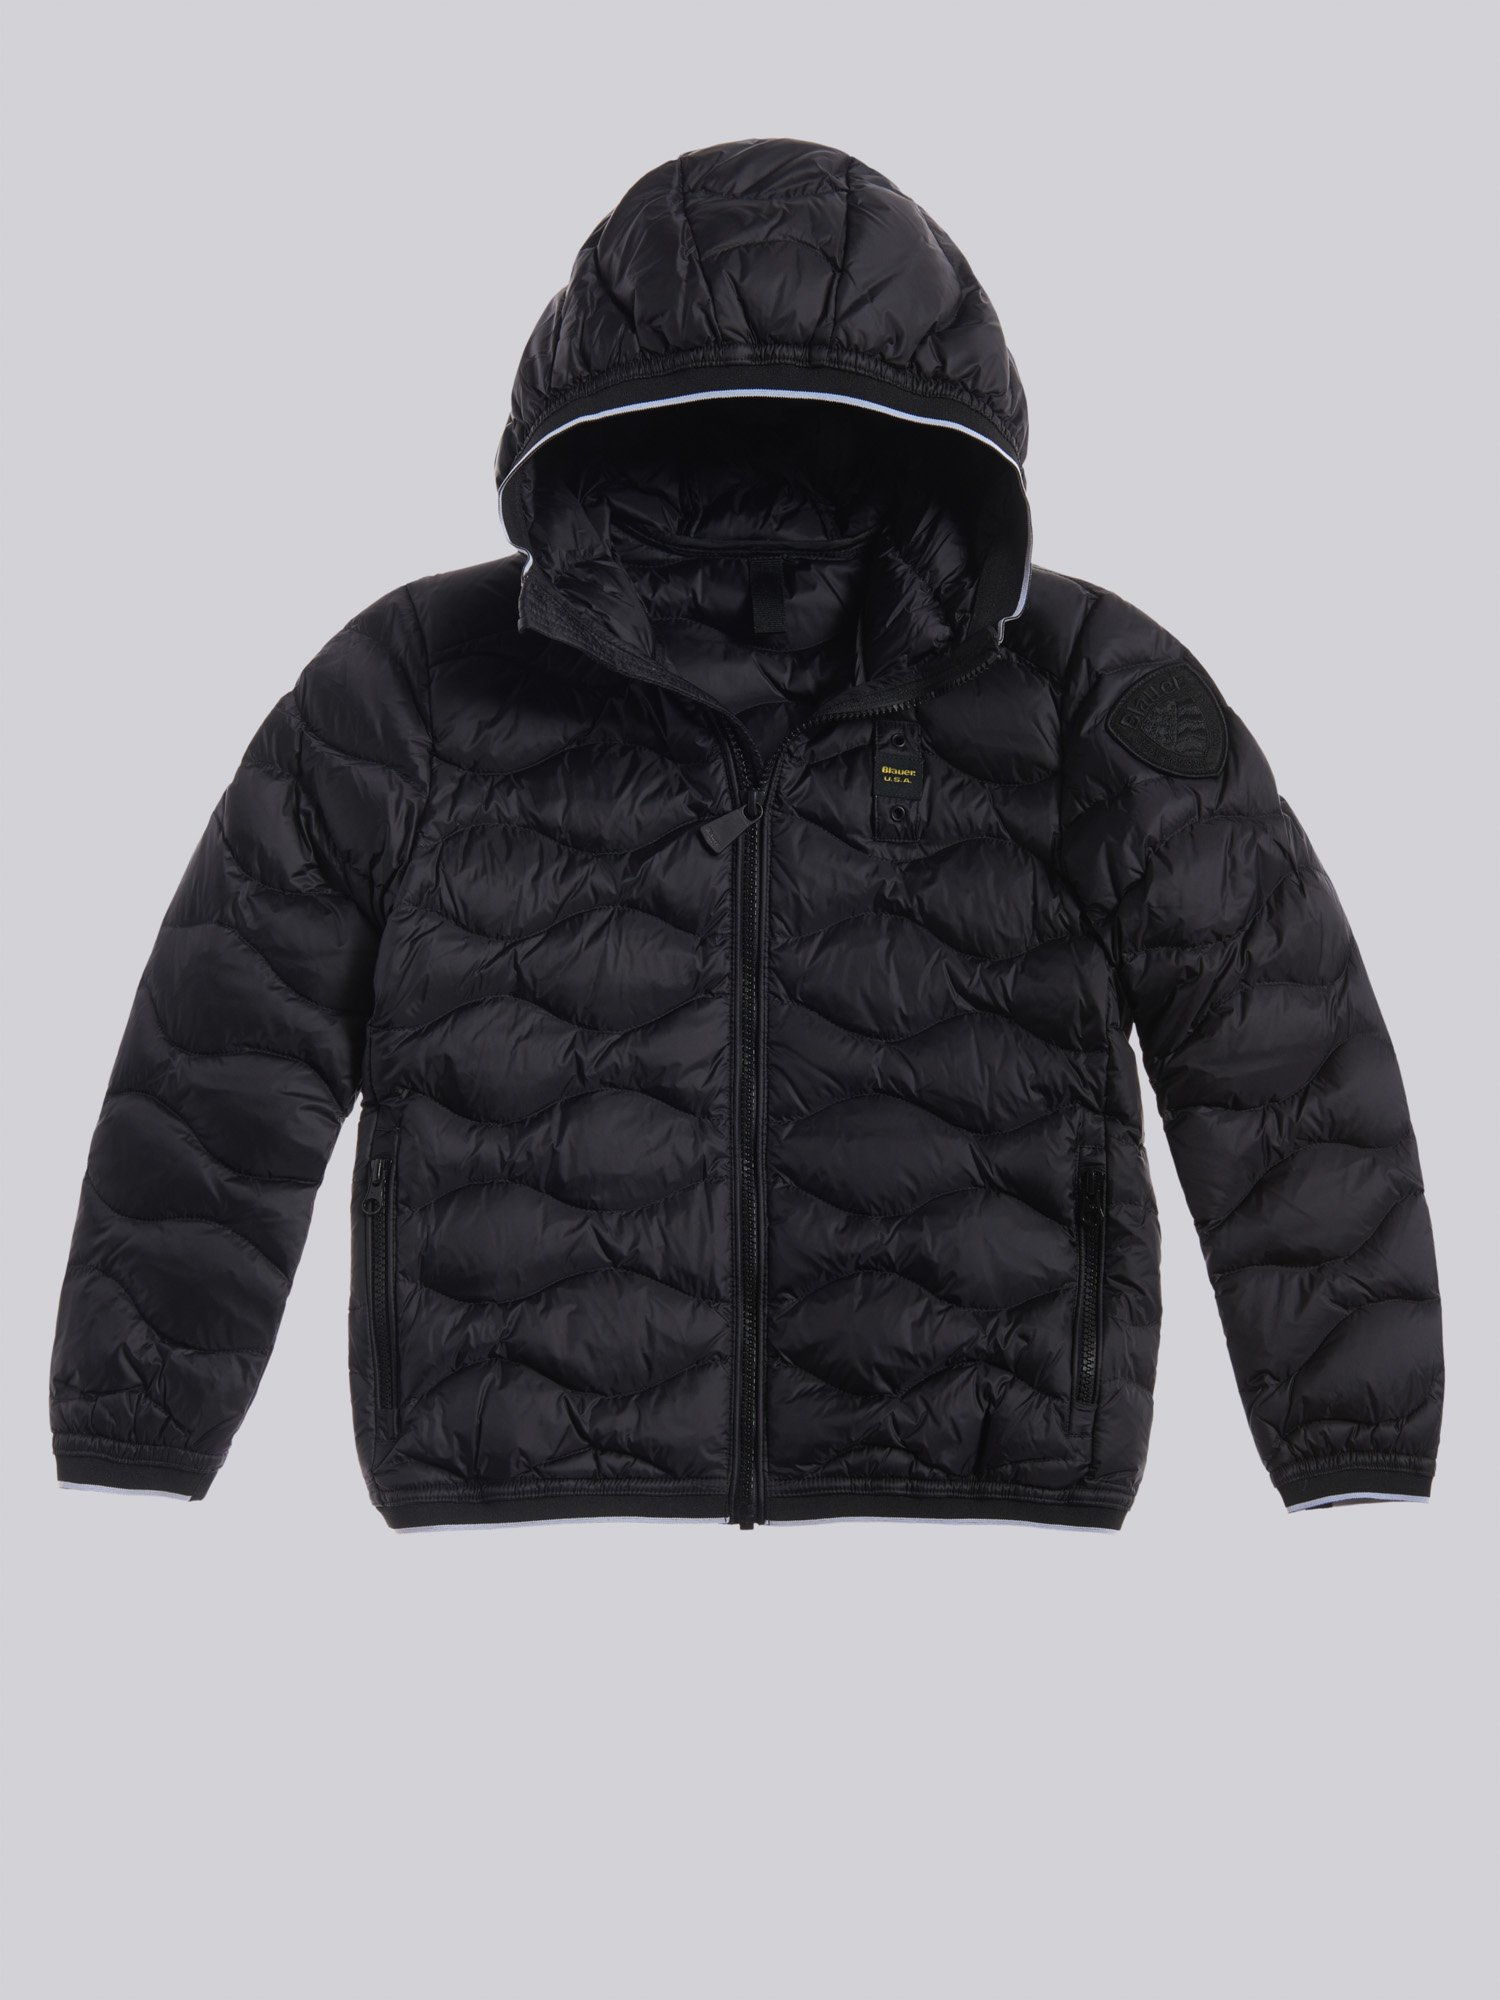 Blauer - MANUEL WAVE-QUILTED DOWN JACKET - Black - Blauer